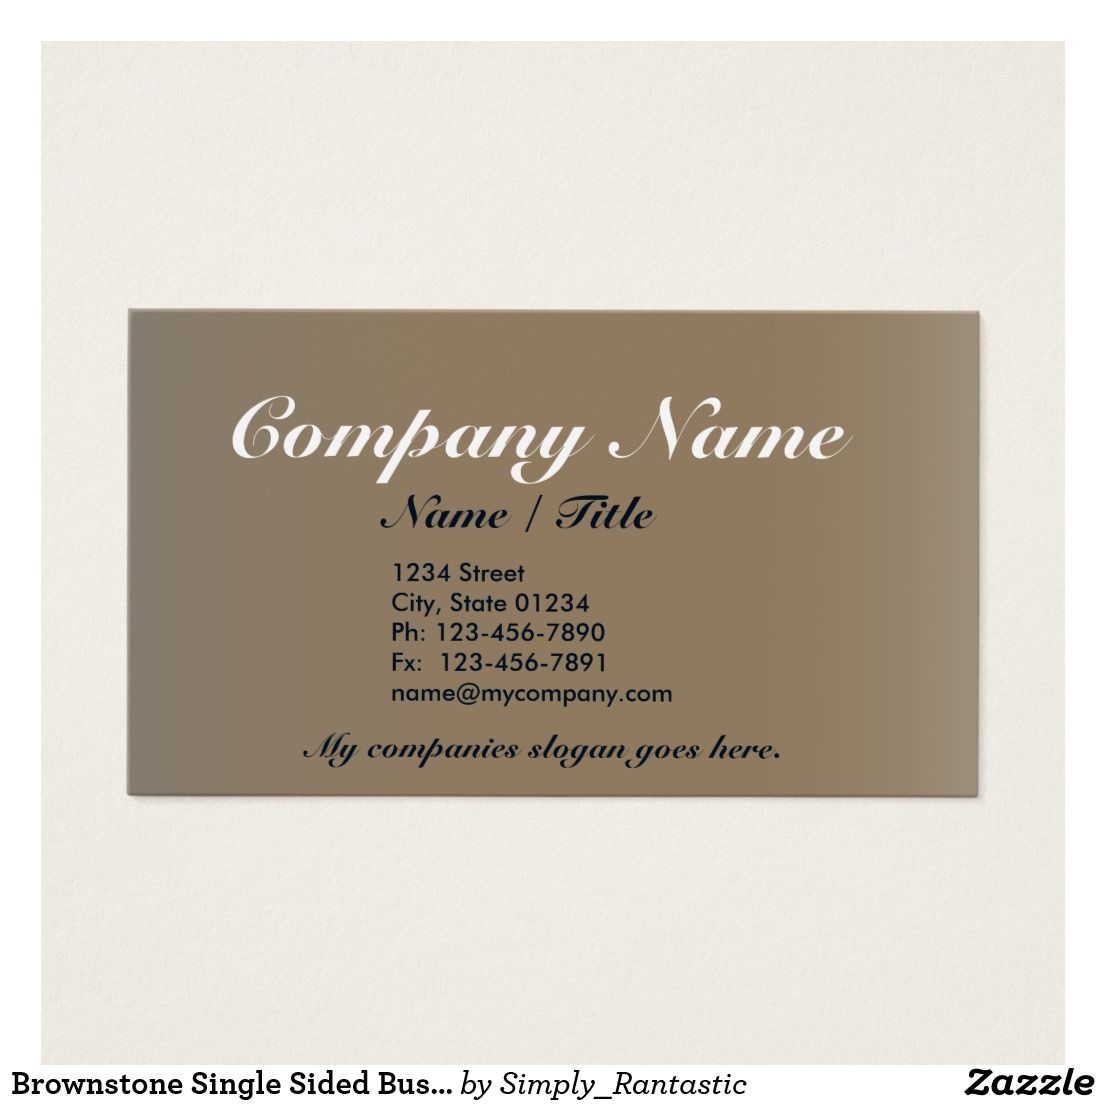 Brownstone single sided business card template v3 business cards brownstone single sided business card template v3 colourmoves